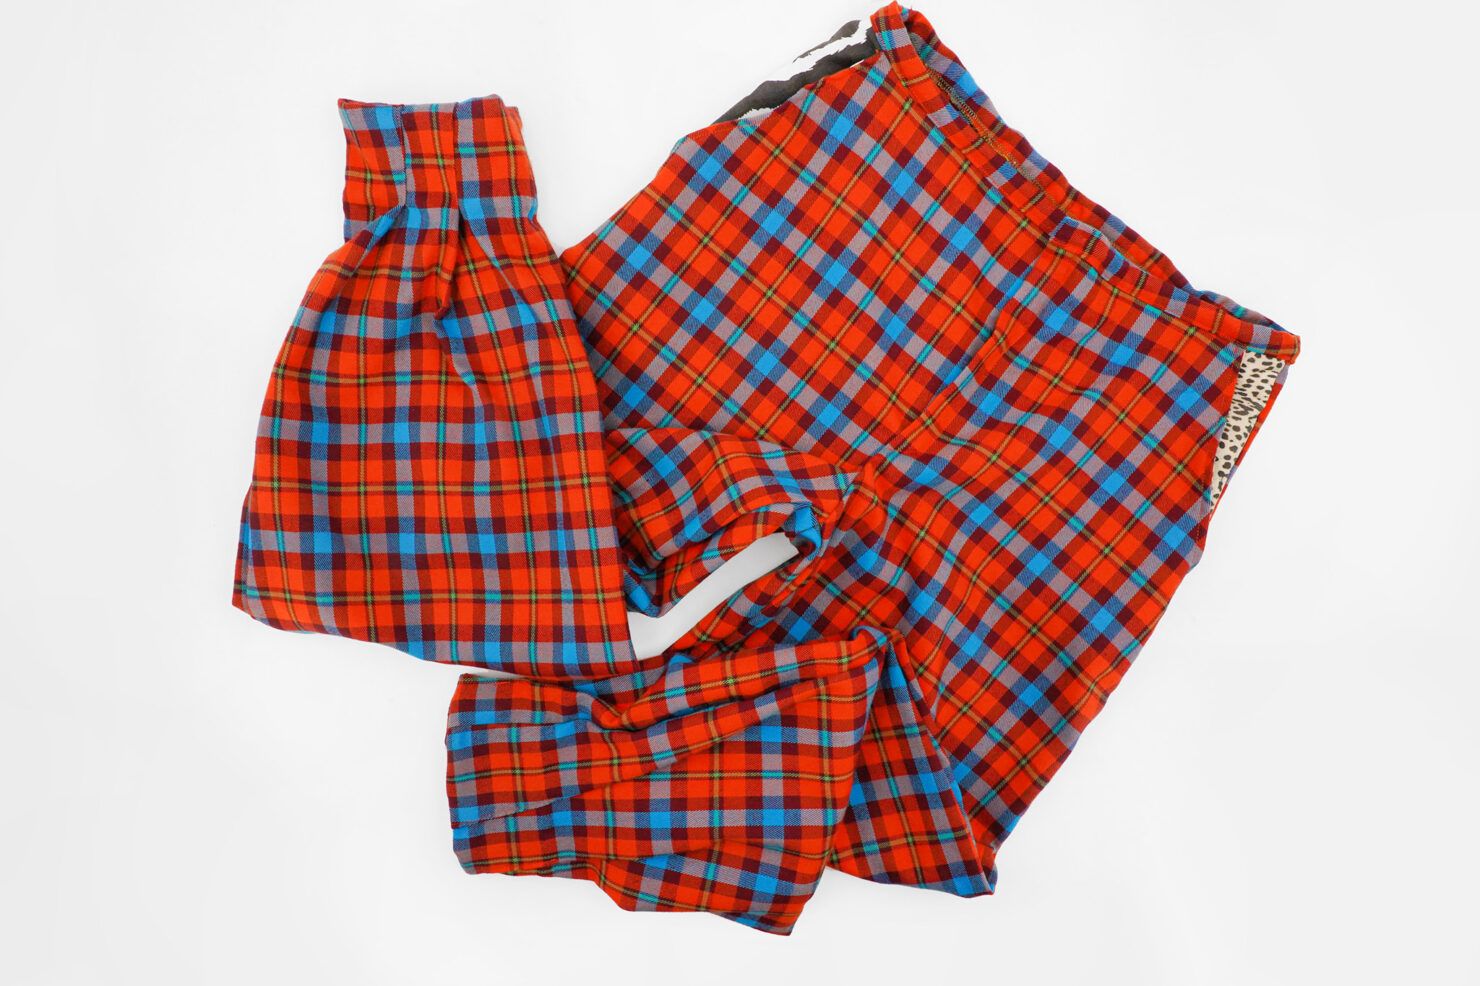 Tight tartan trousers